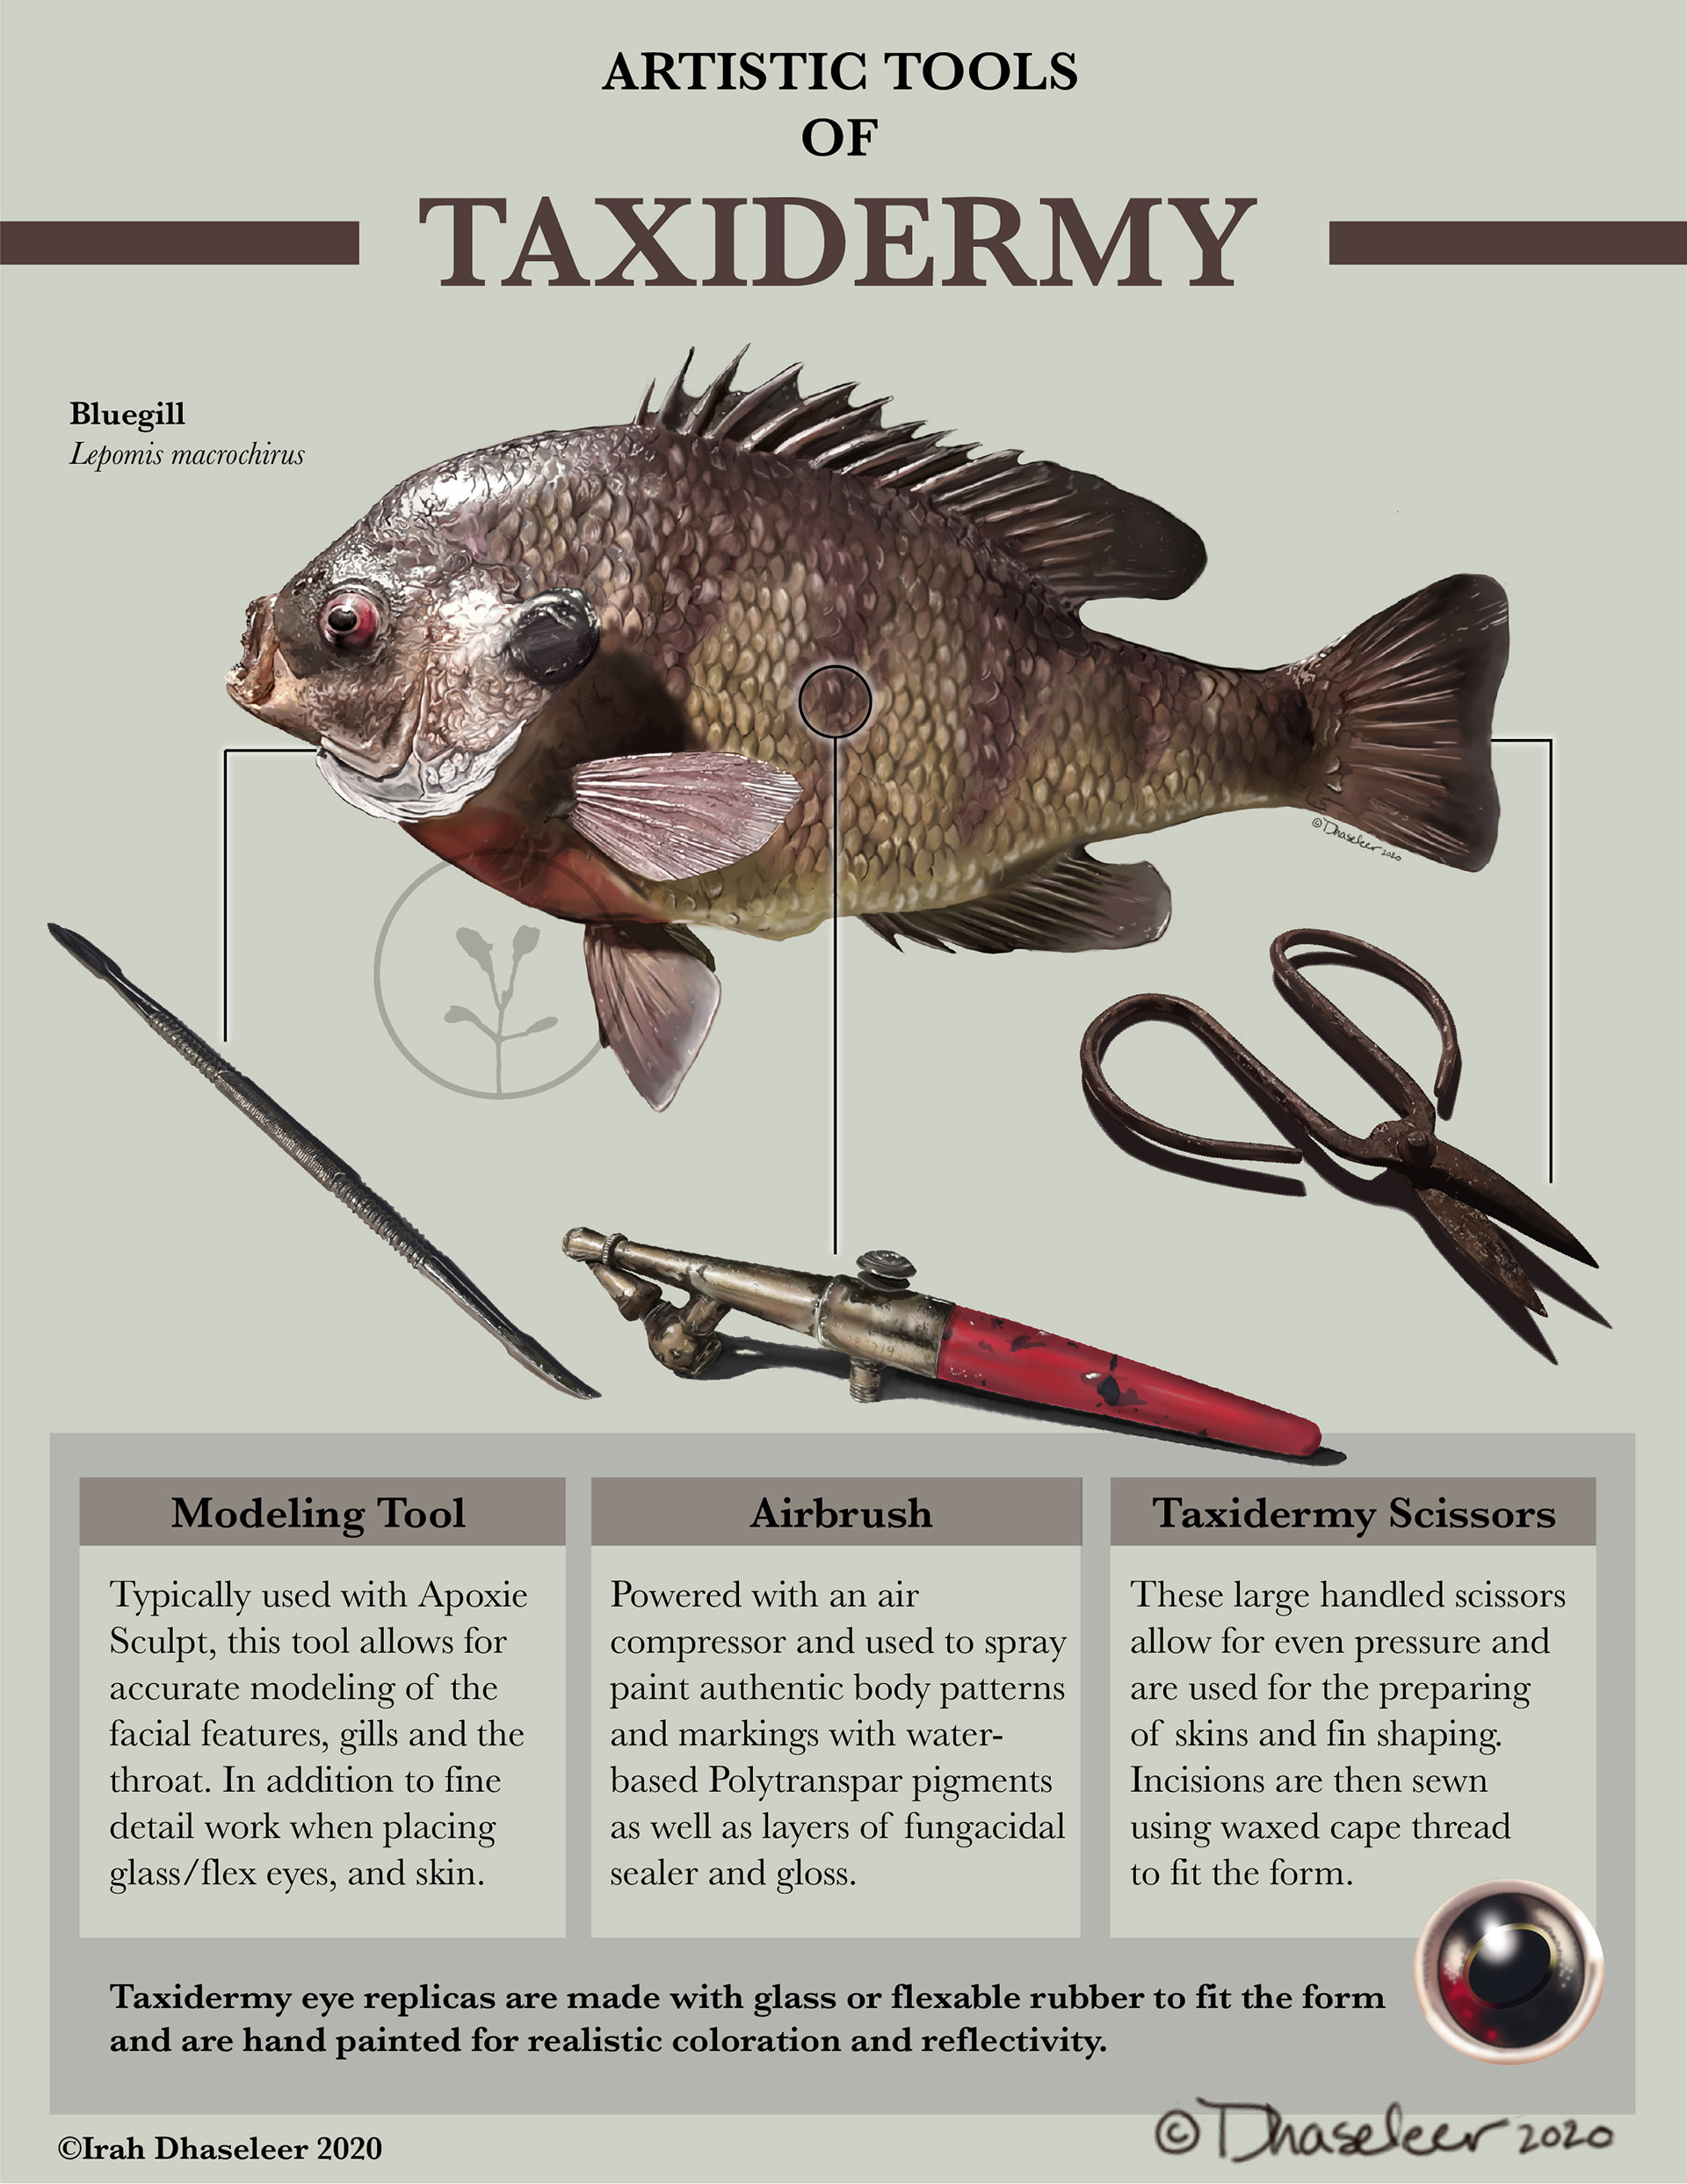 Tools of Taxidermy